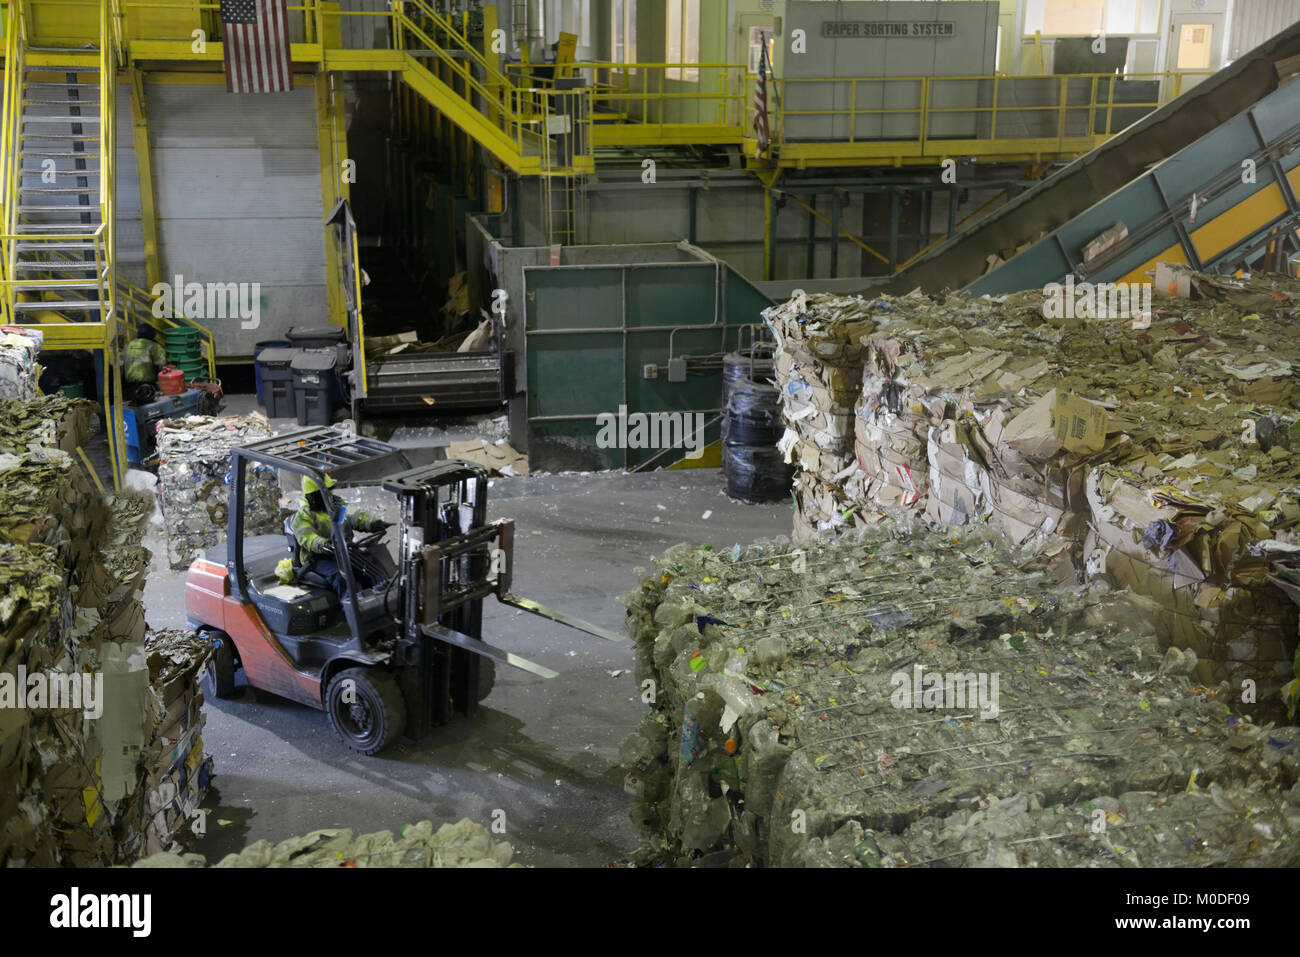 Recycling transfer facility, Rockland County, NY - Stock Image